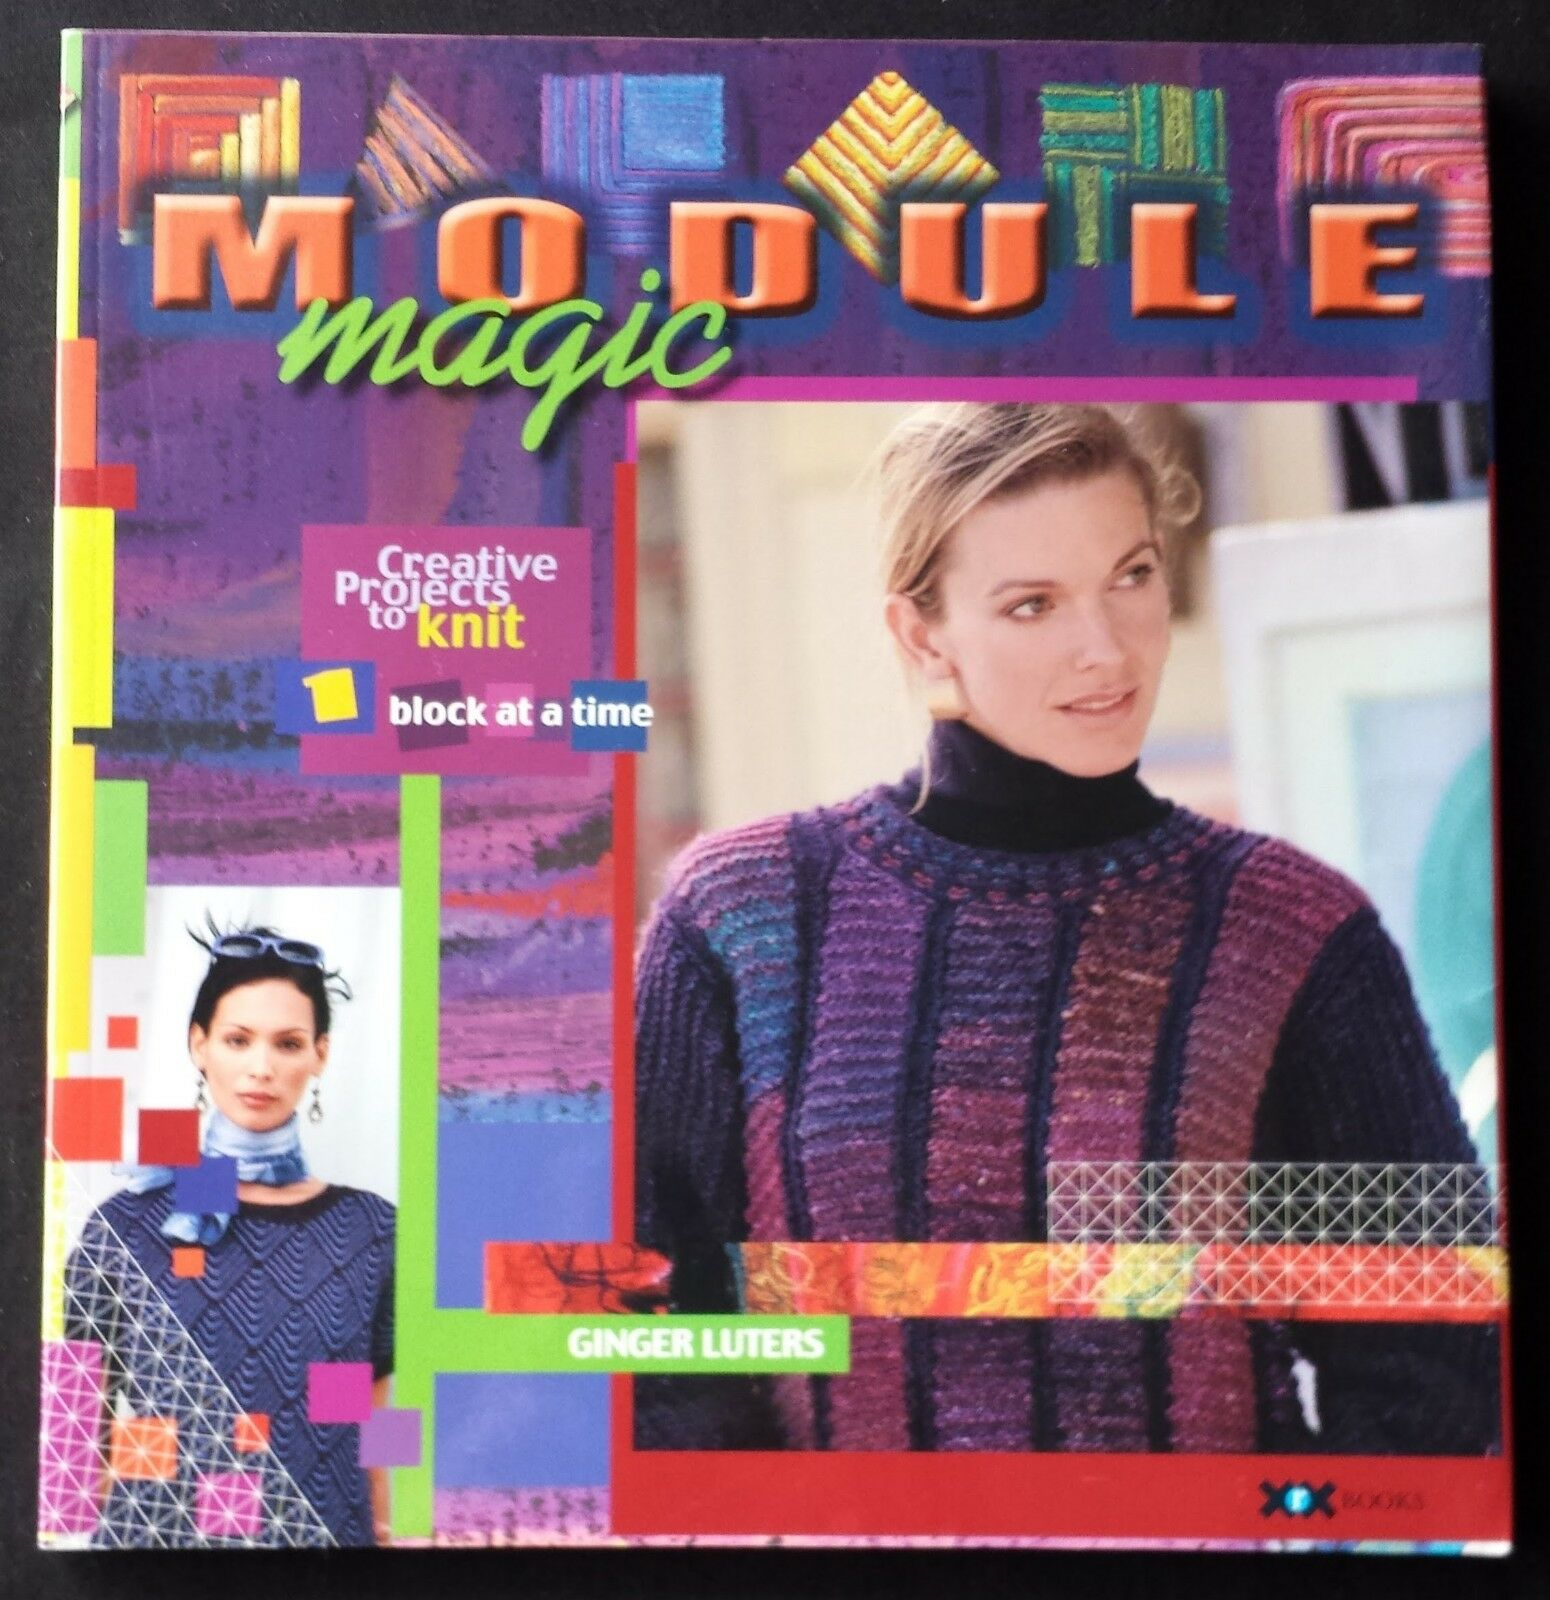 Creative Projects to Knit One Block at a Time Ginger Luters Module Magic